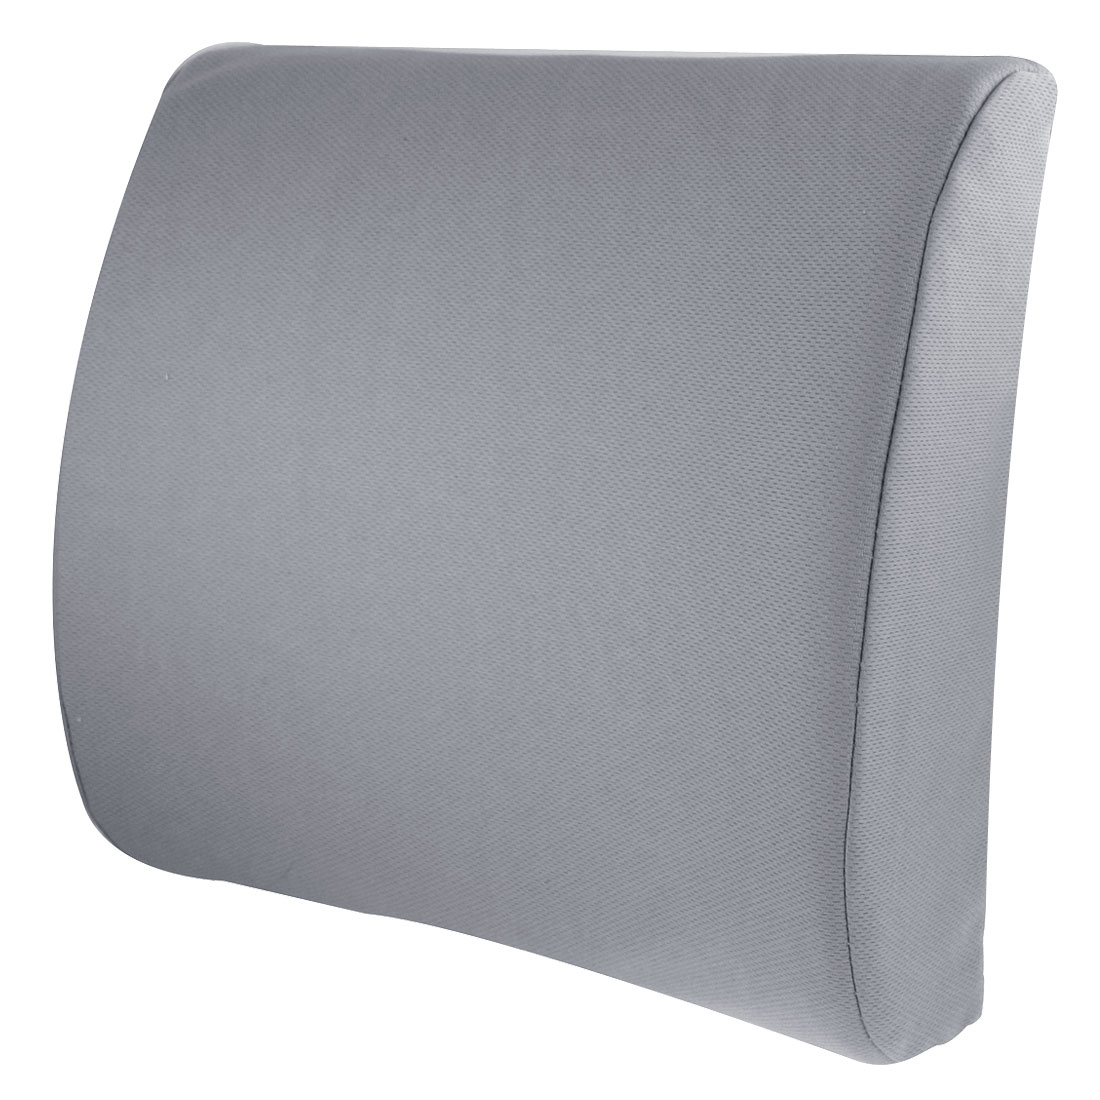 Car Interior Lumbar Back Support Rest Padded Pillow Cushion Gray